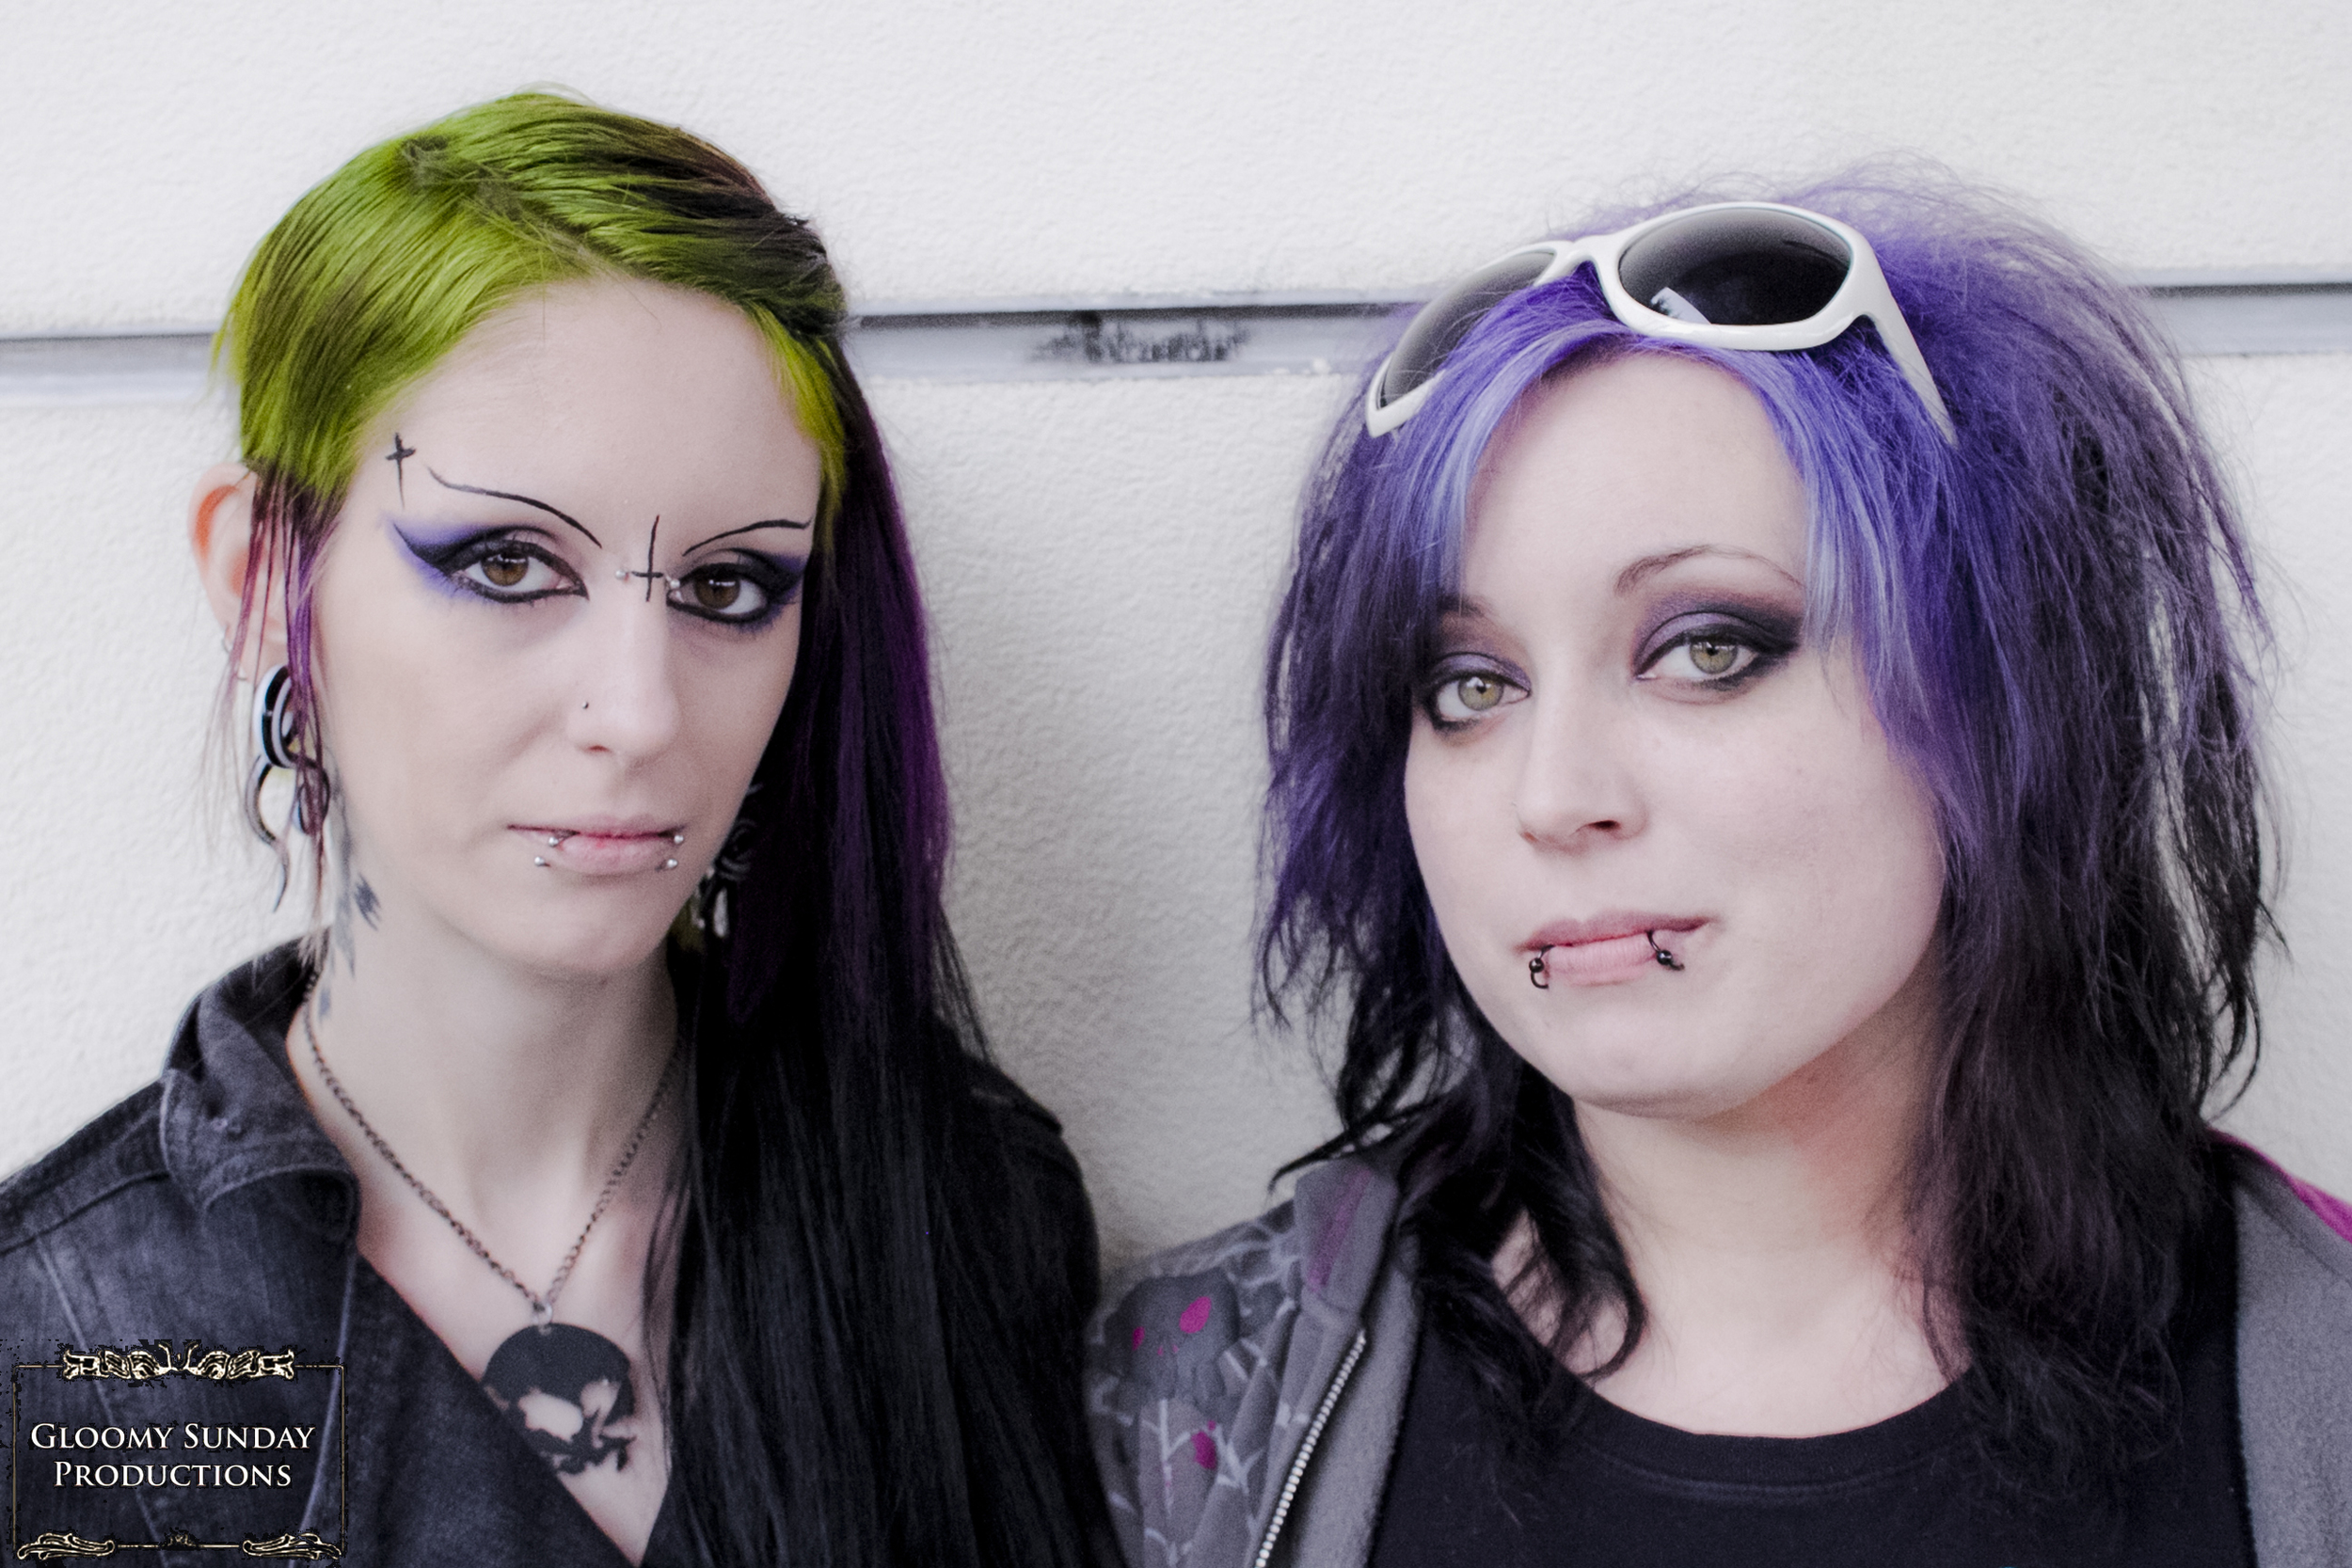 Crypticon Ghoulgirls Arianna Clawson & Jacqueline Slaughter